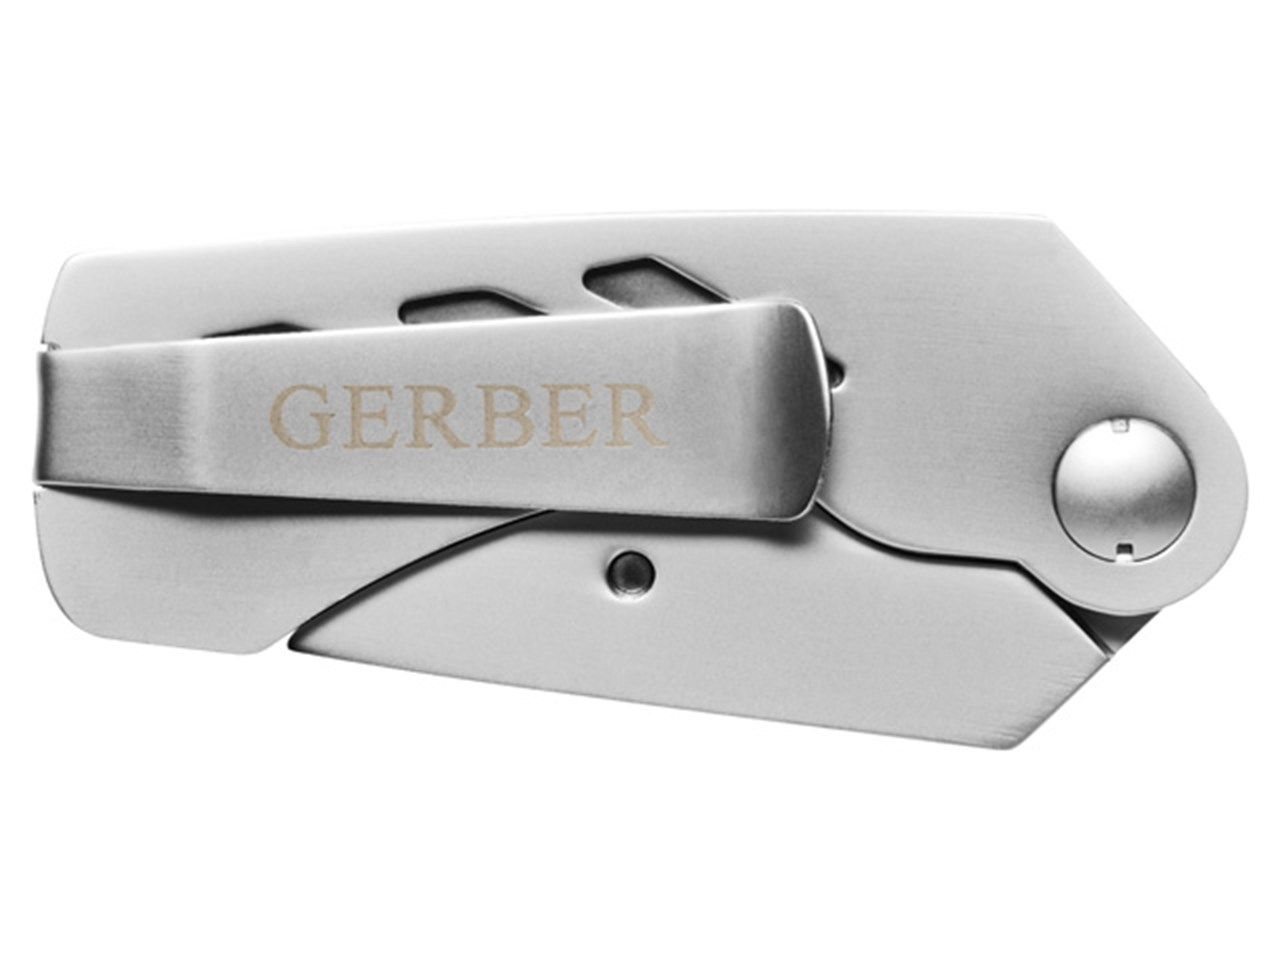 gerber eab lite how to close